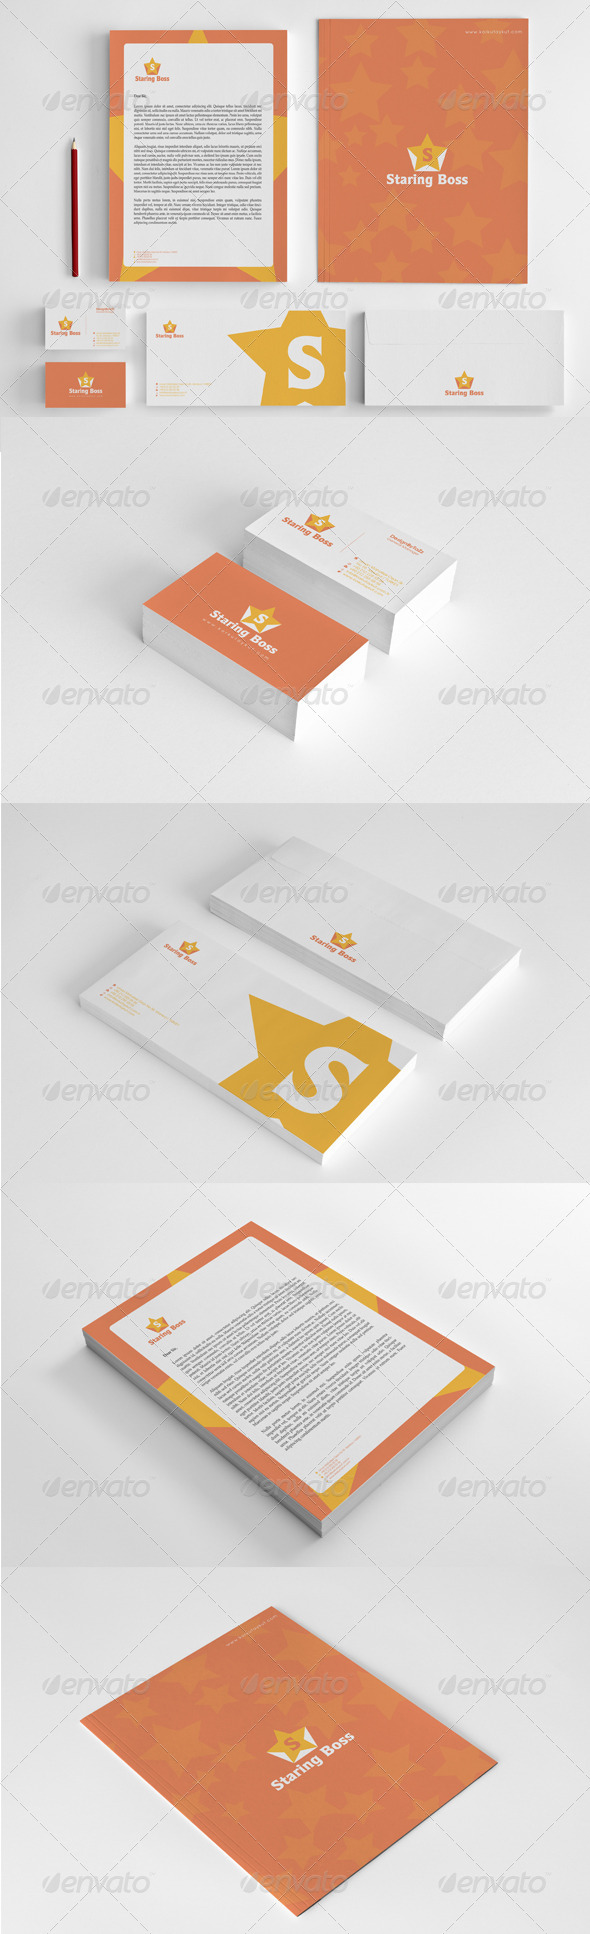 Staring Boss Corporate Identity Package - Stationery Print Templates